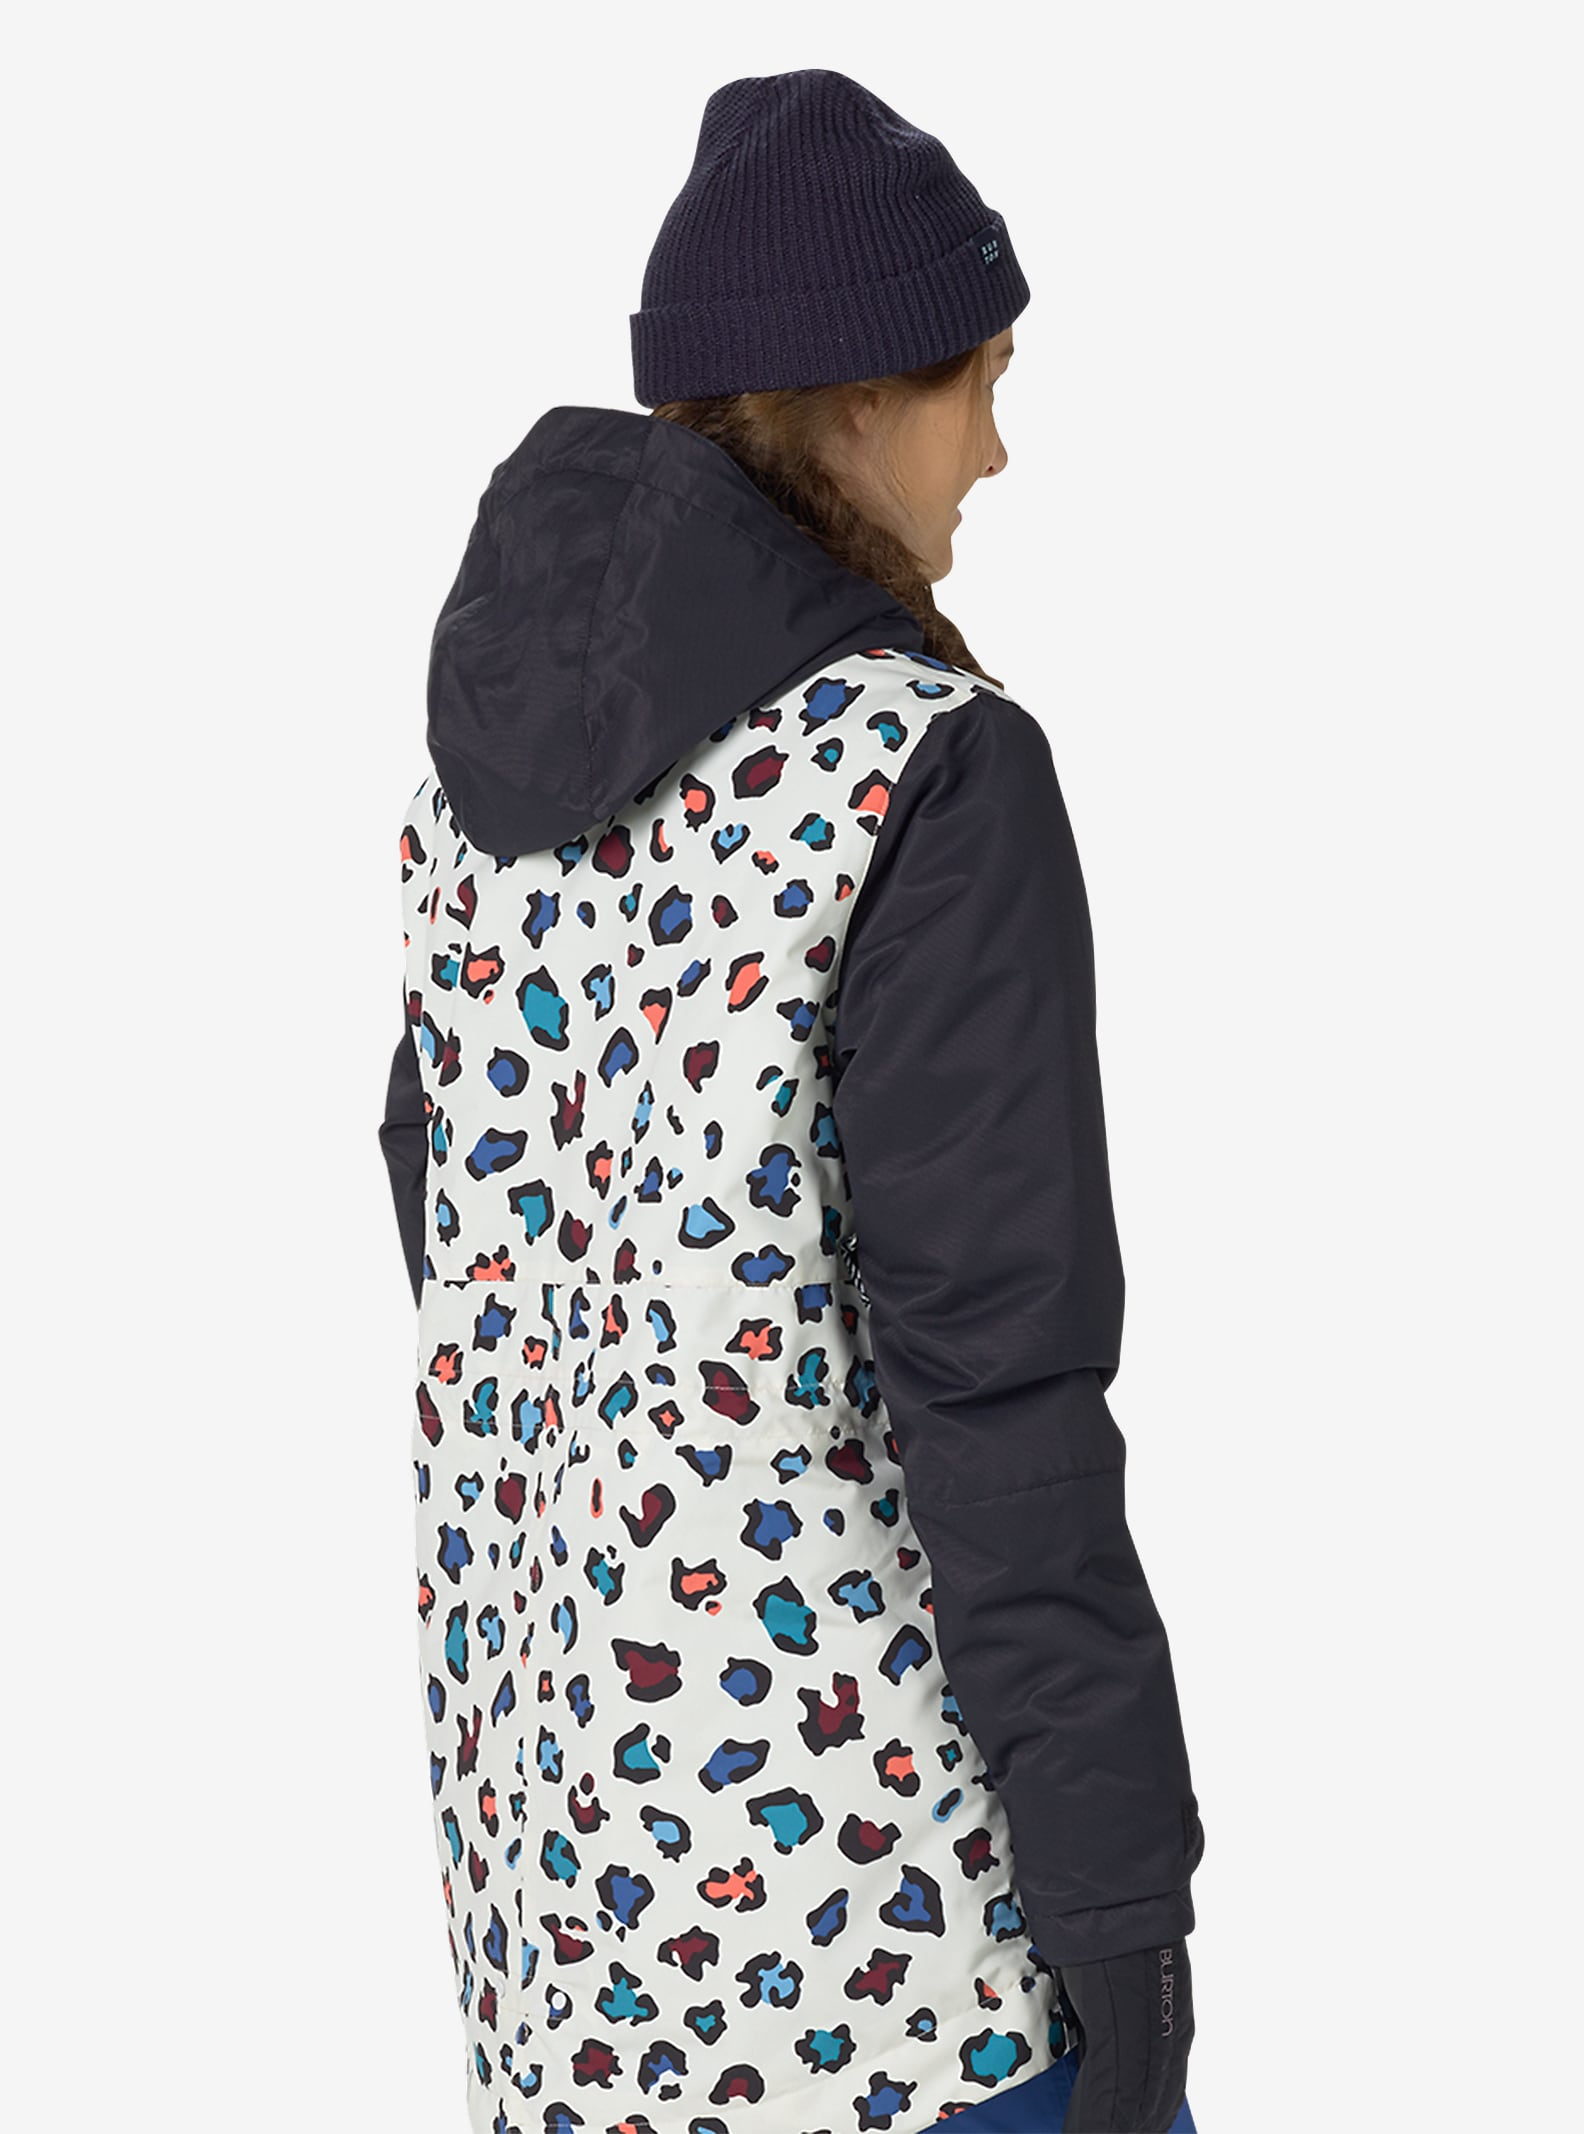 Burton TWC Troublemaker Jacke angezeigt in Rainbow Cheetah / True Black